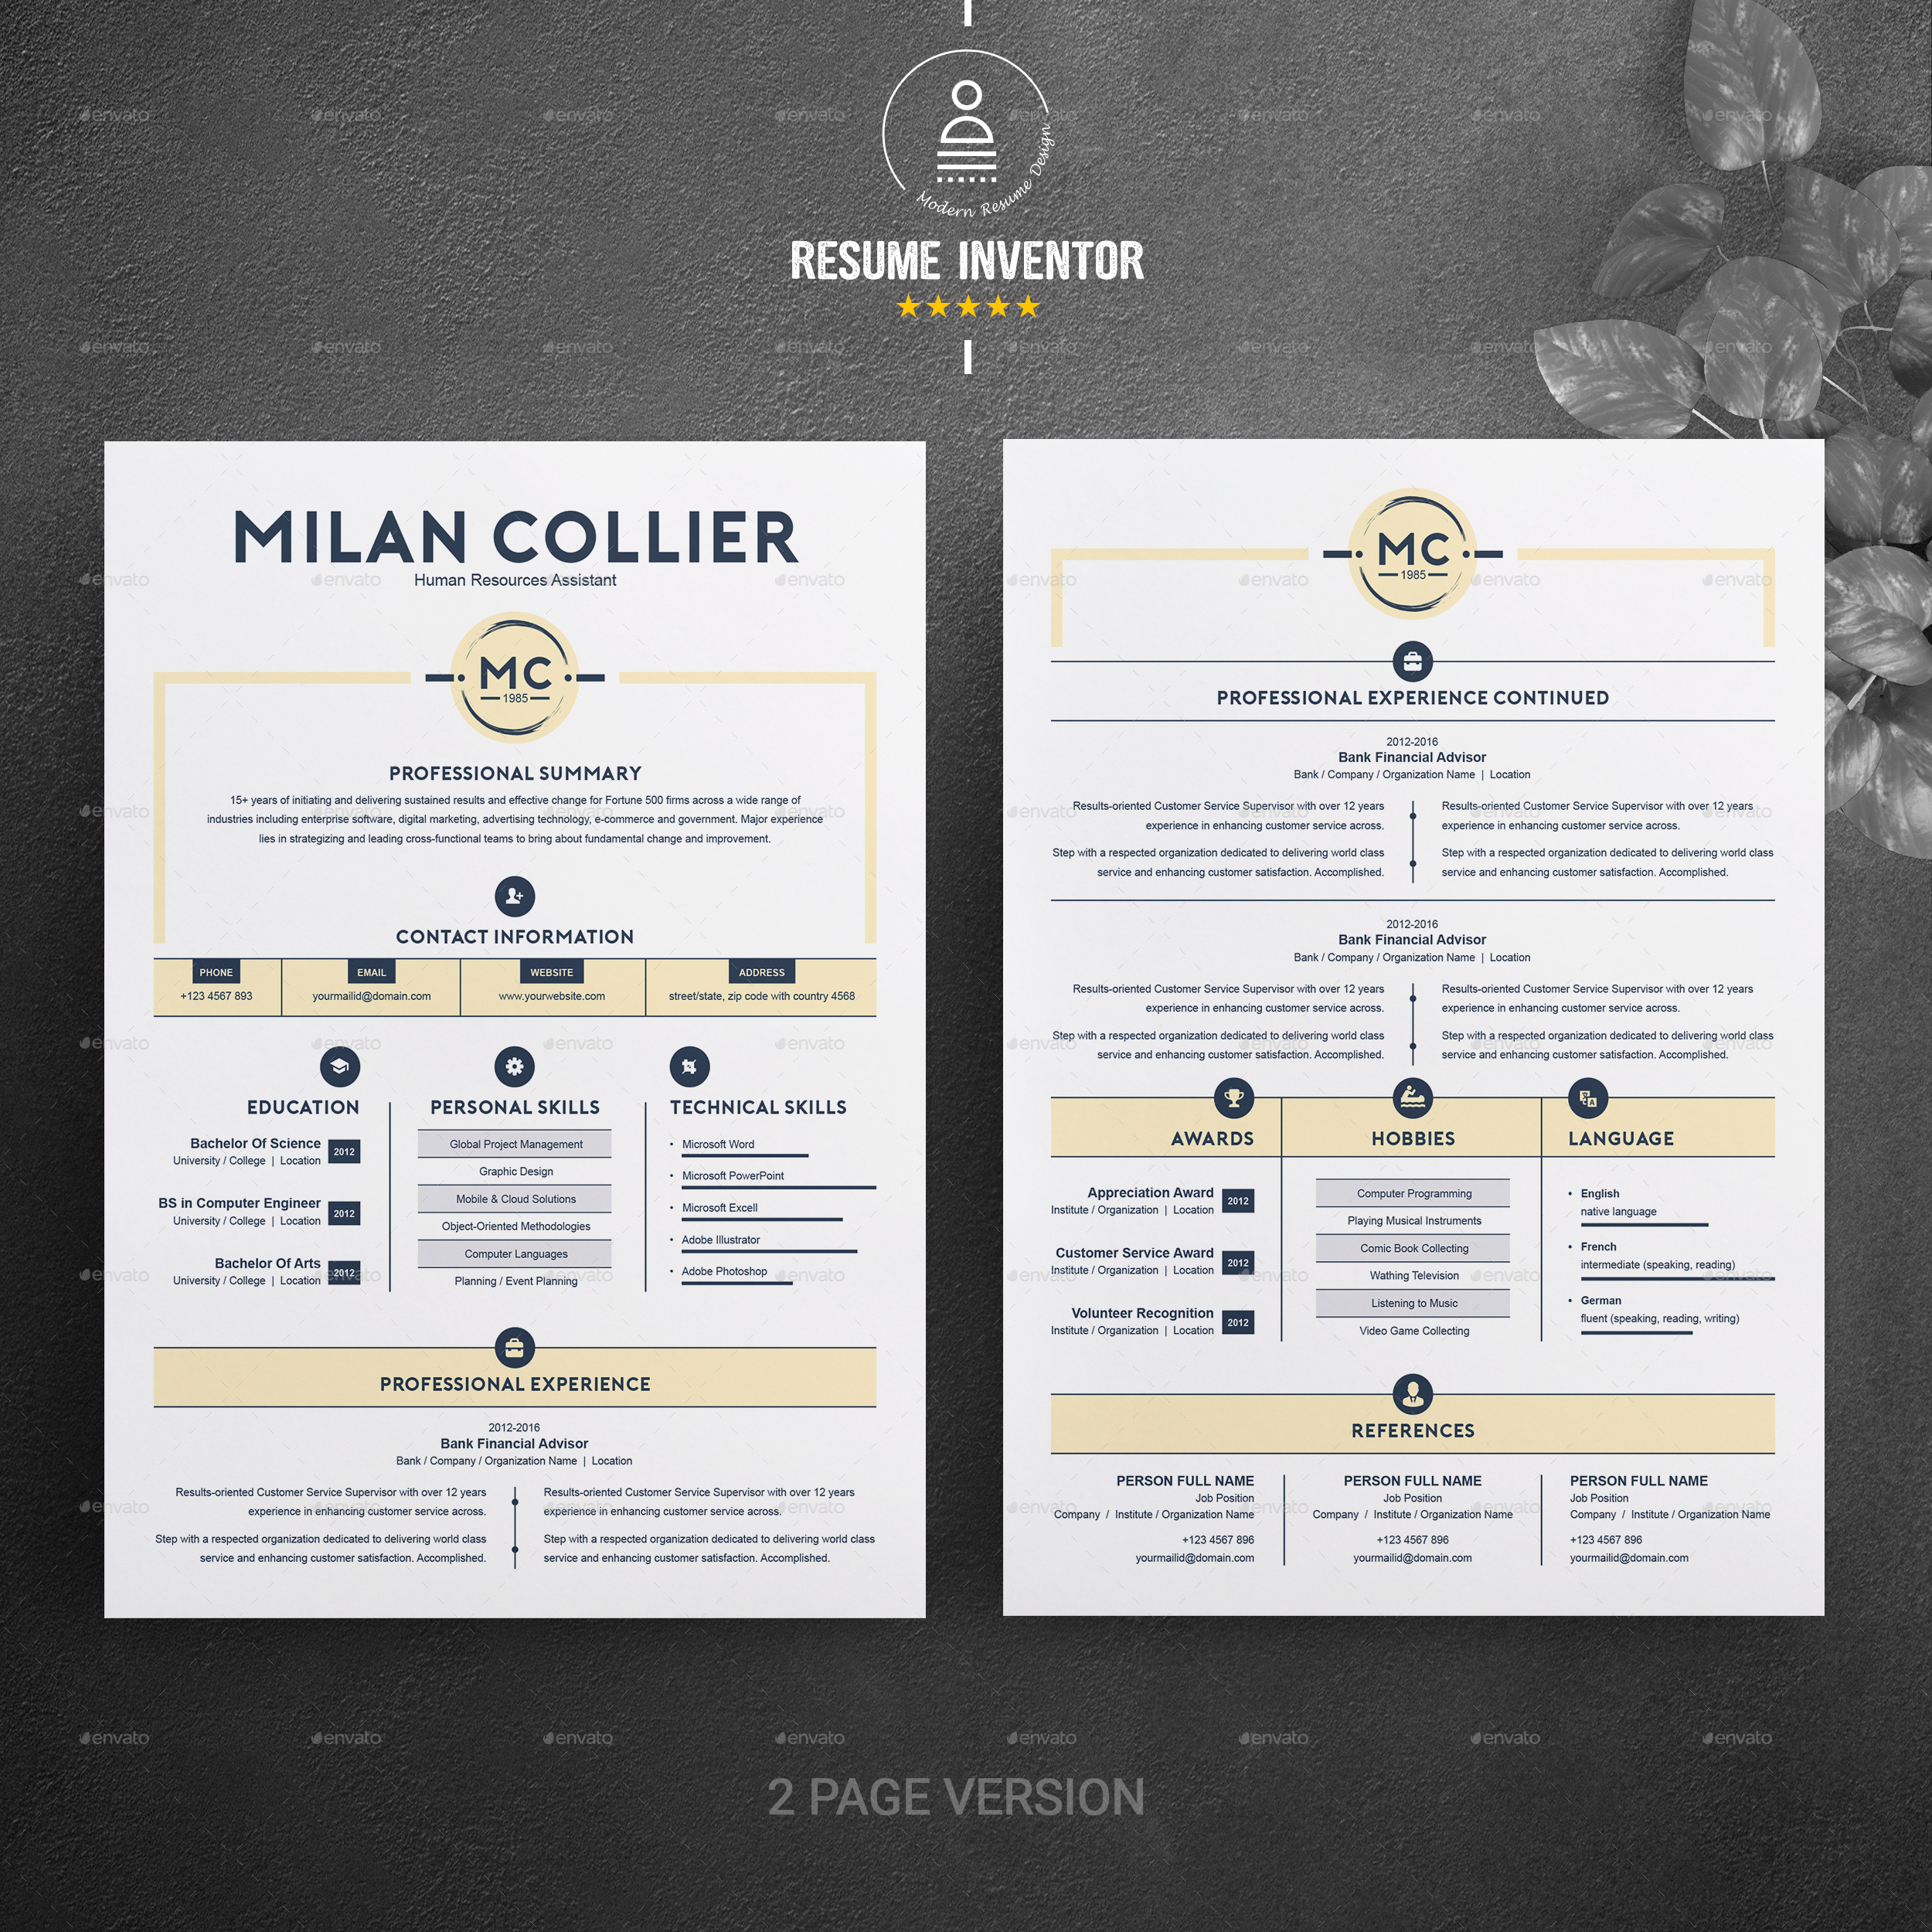 ... 03_Preview Image Set/05_Free Resume Template Reference Page  No 04 Design Template Copy ...